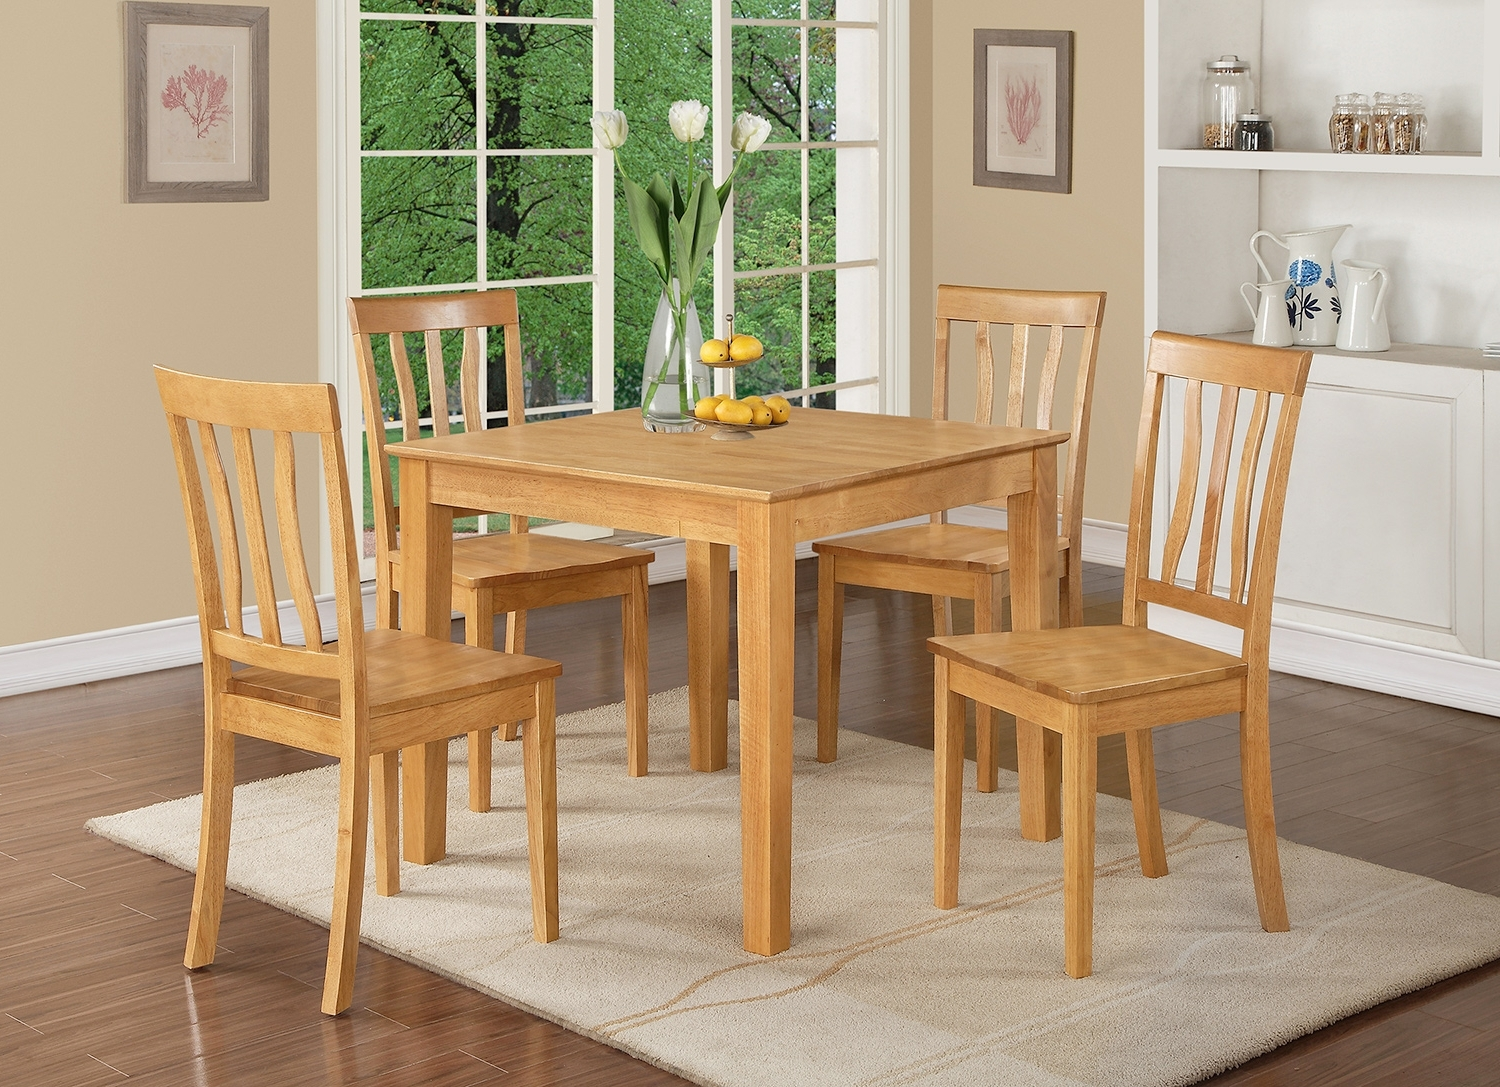 3 Piece Small Kitchen Table And Chairs Set  Square Kitchen Table And Pertaining To Most Popular Kitchen Dining Sets (View 21 of 25)